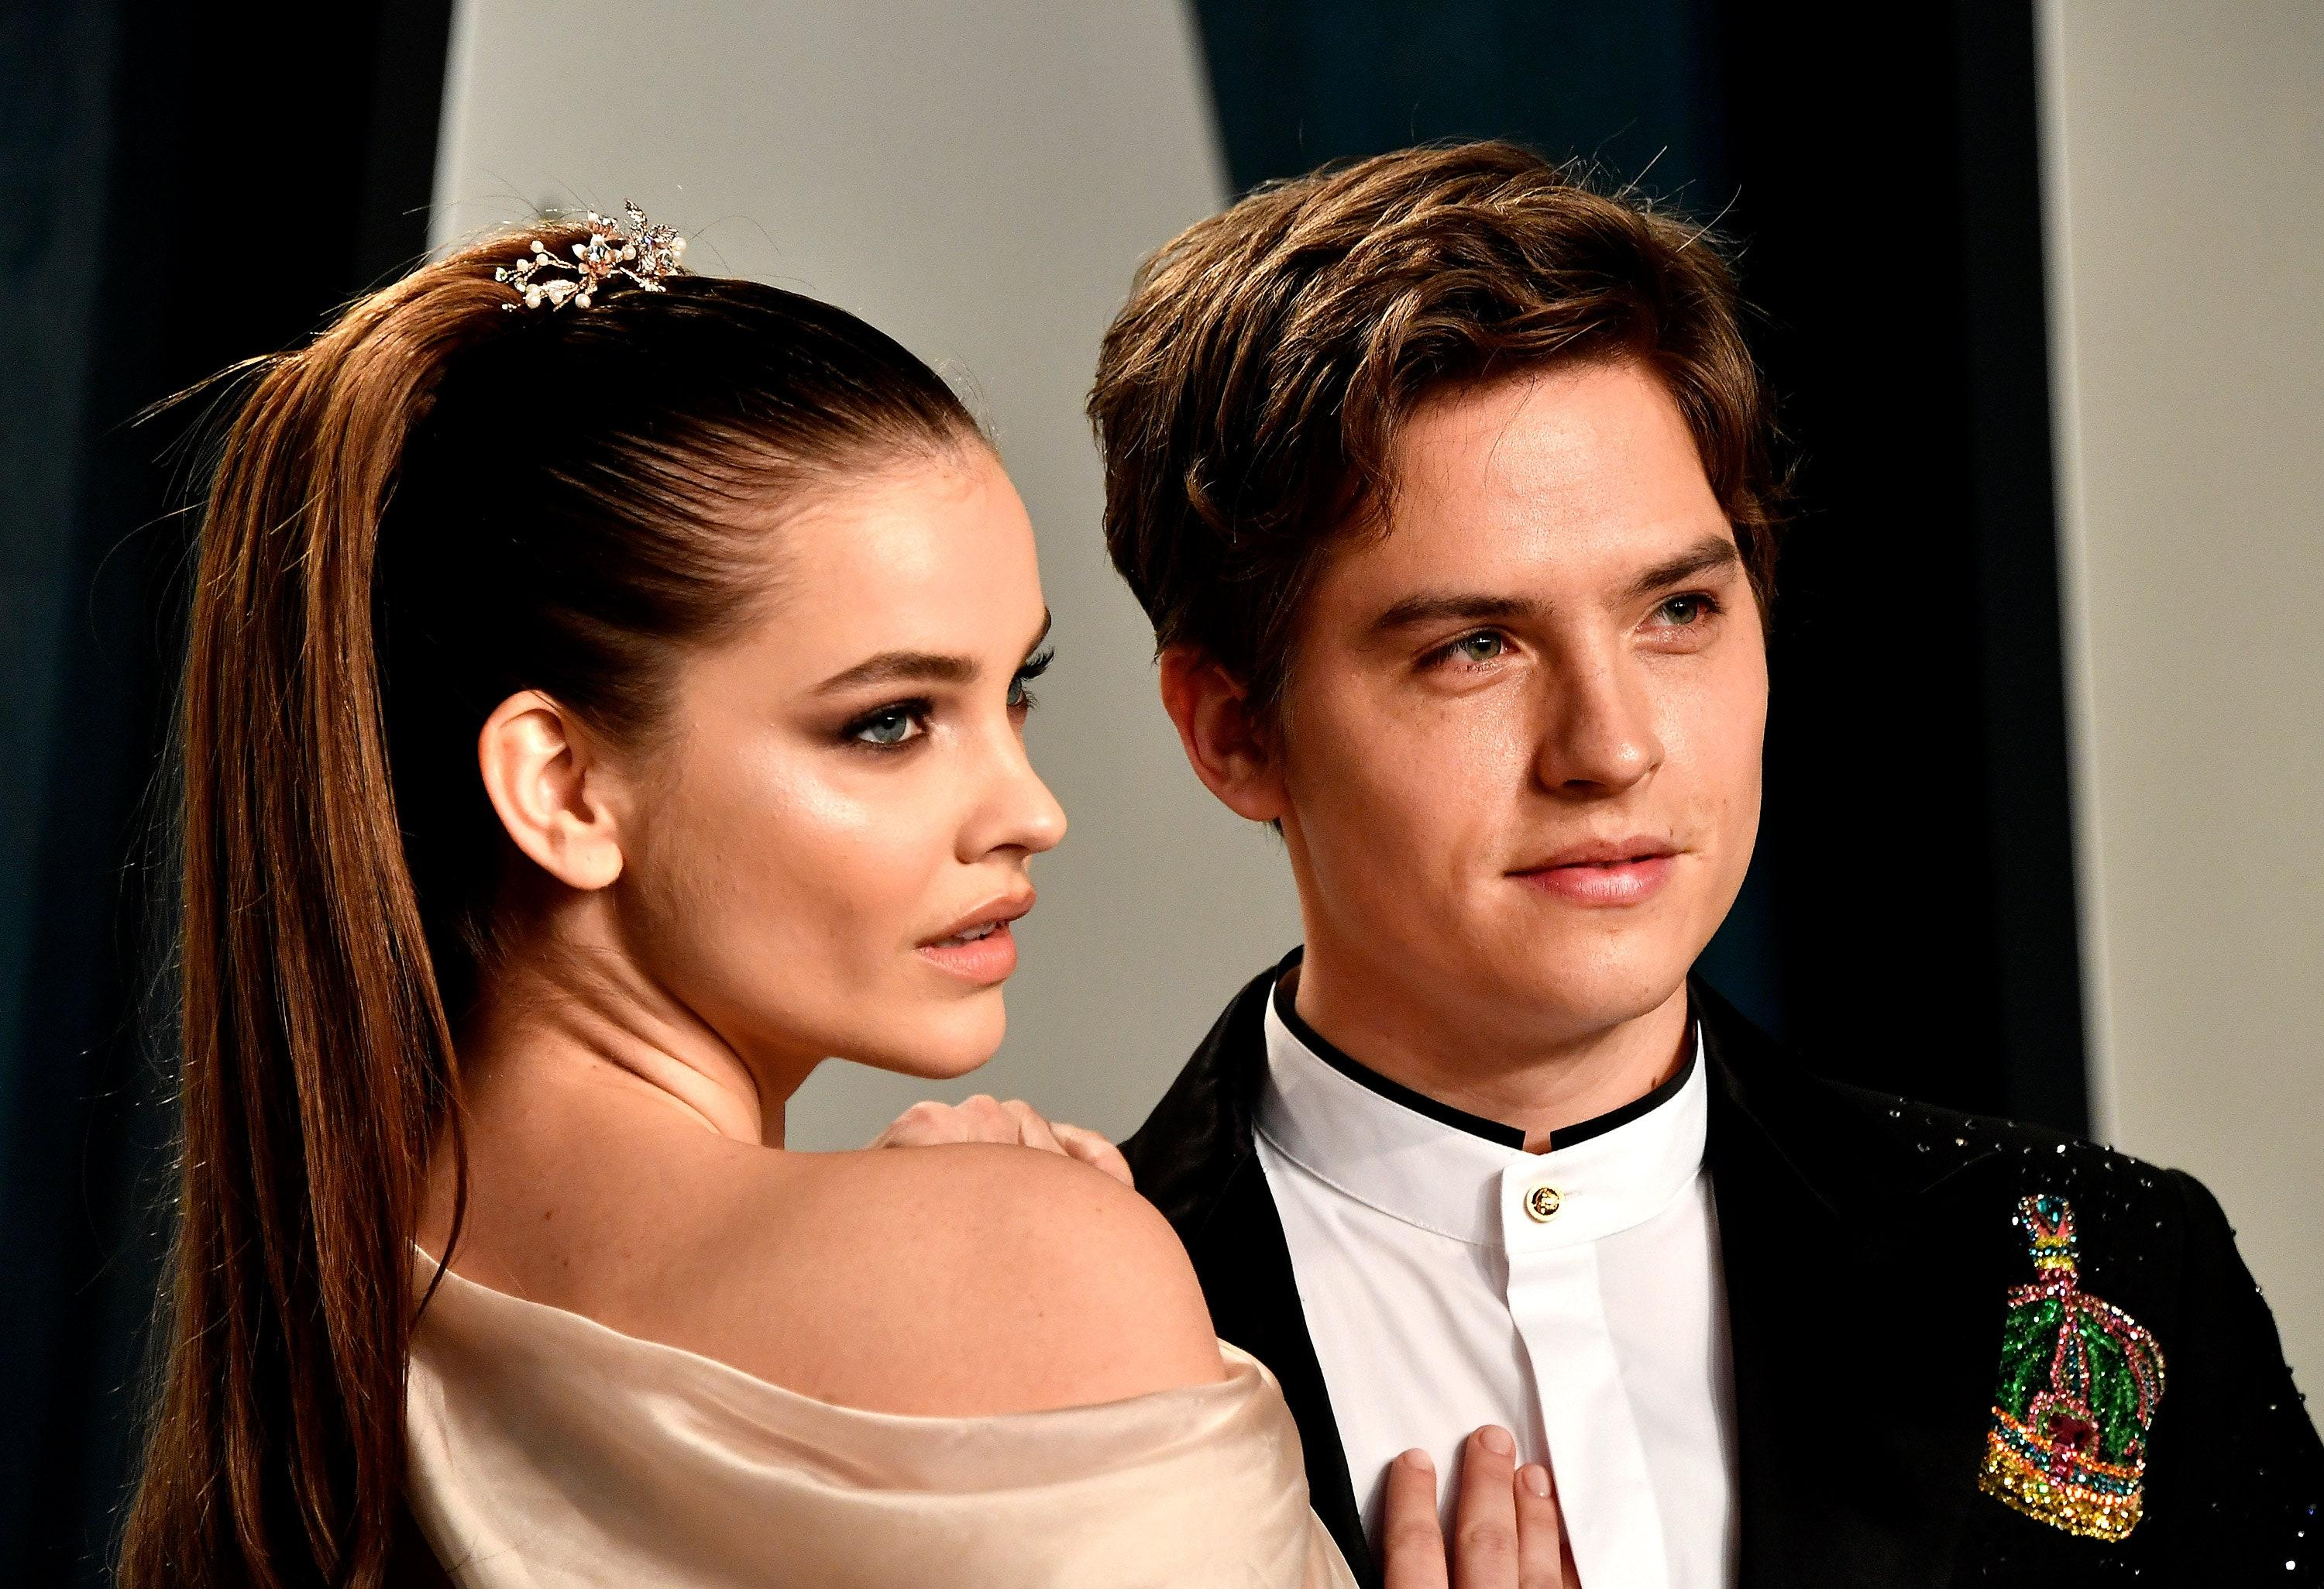 Barbara Palvin y Dylan Sprouse